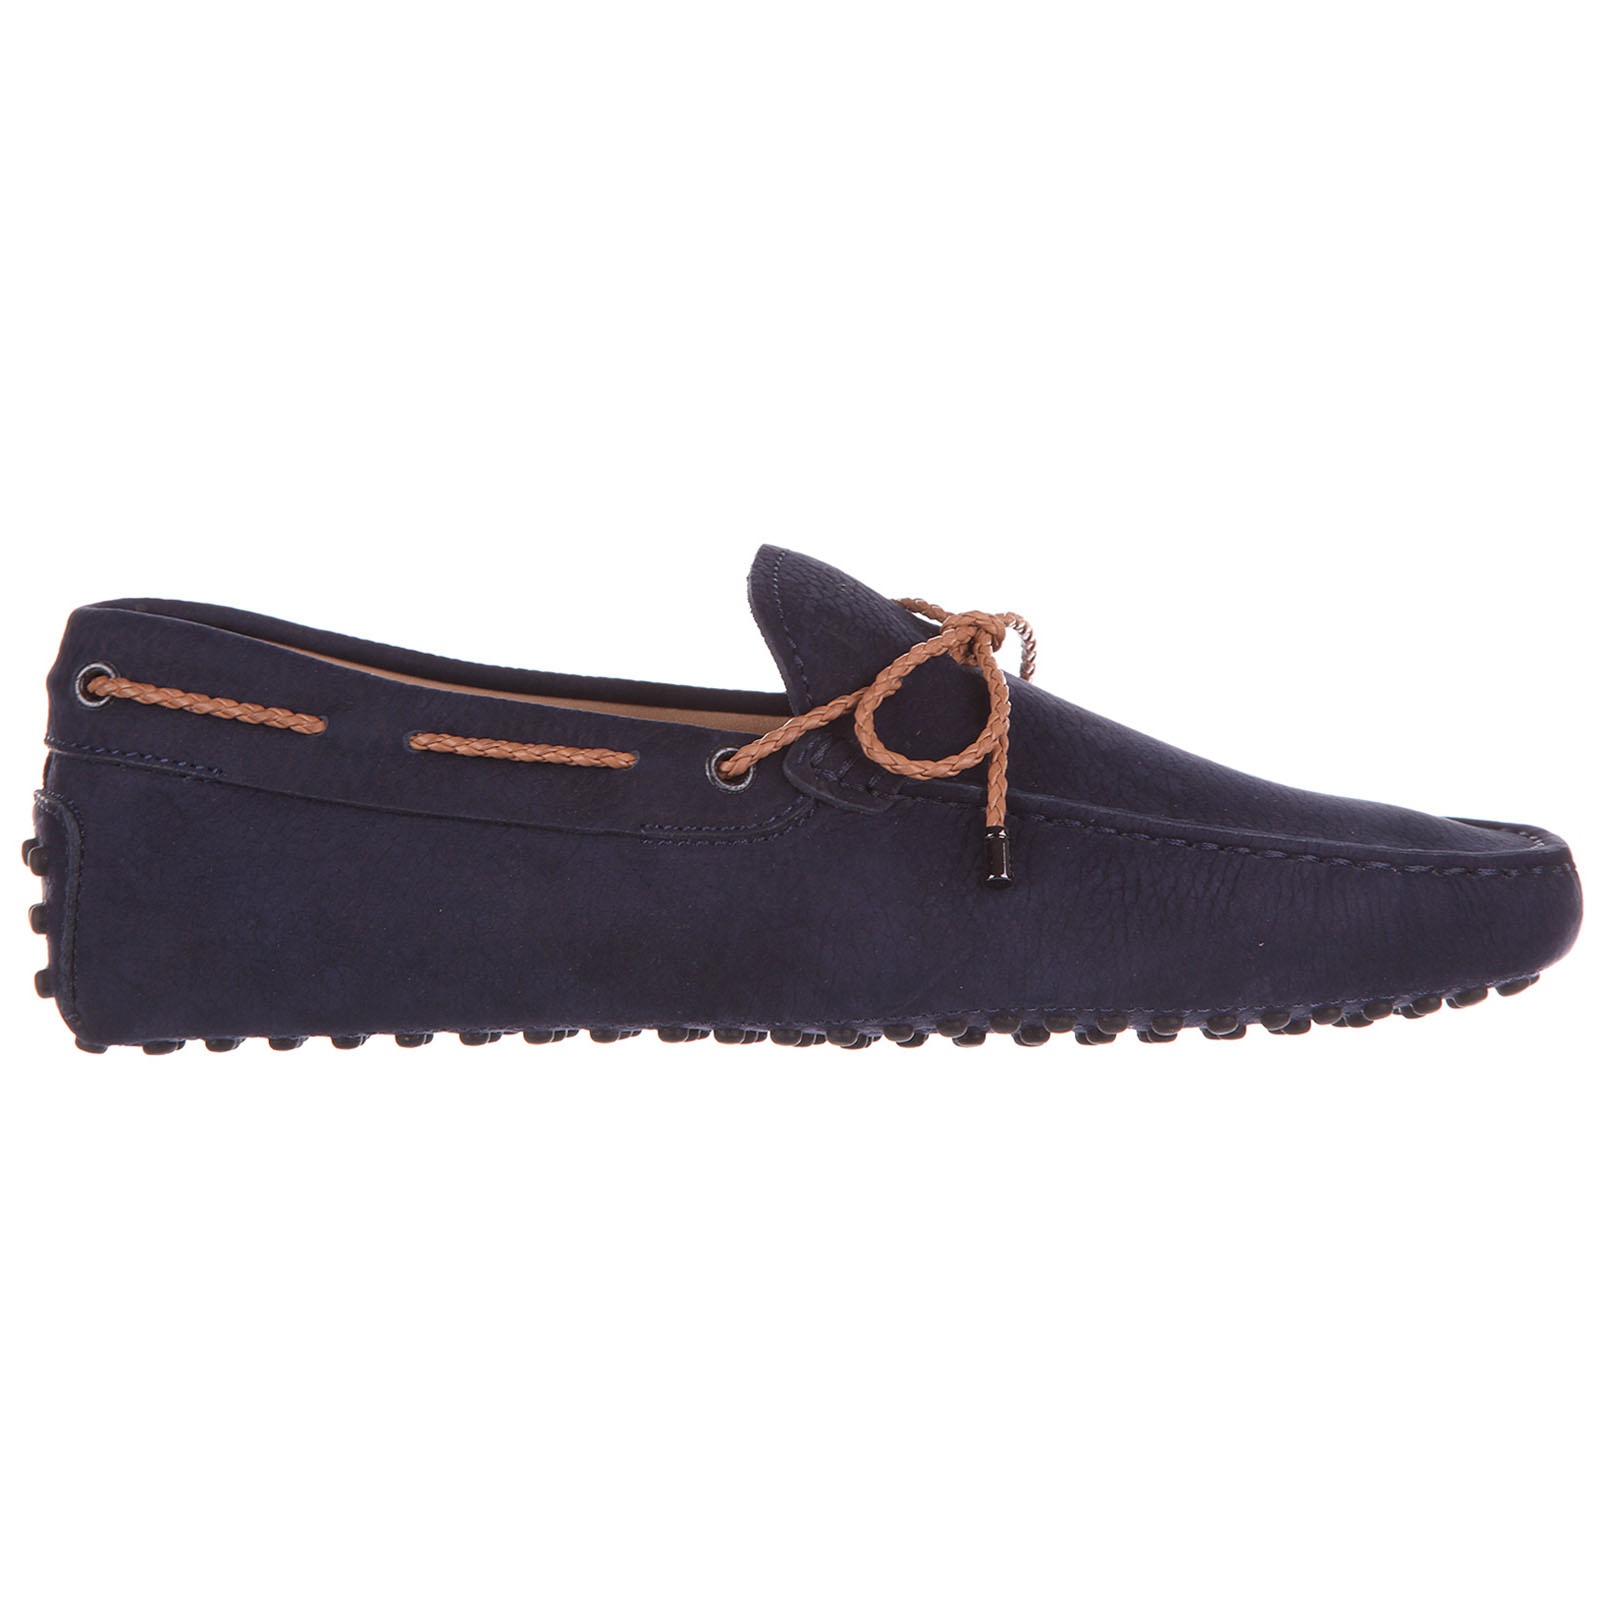 Herren leder mokassins slipper  laccetto gommini 122